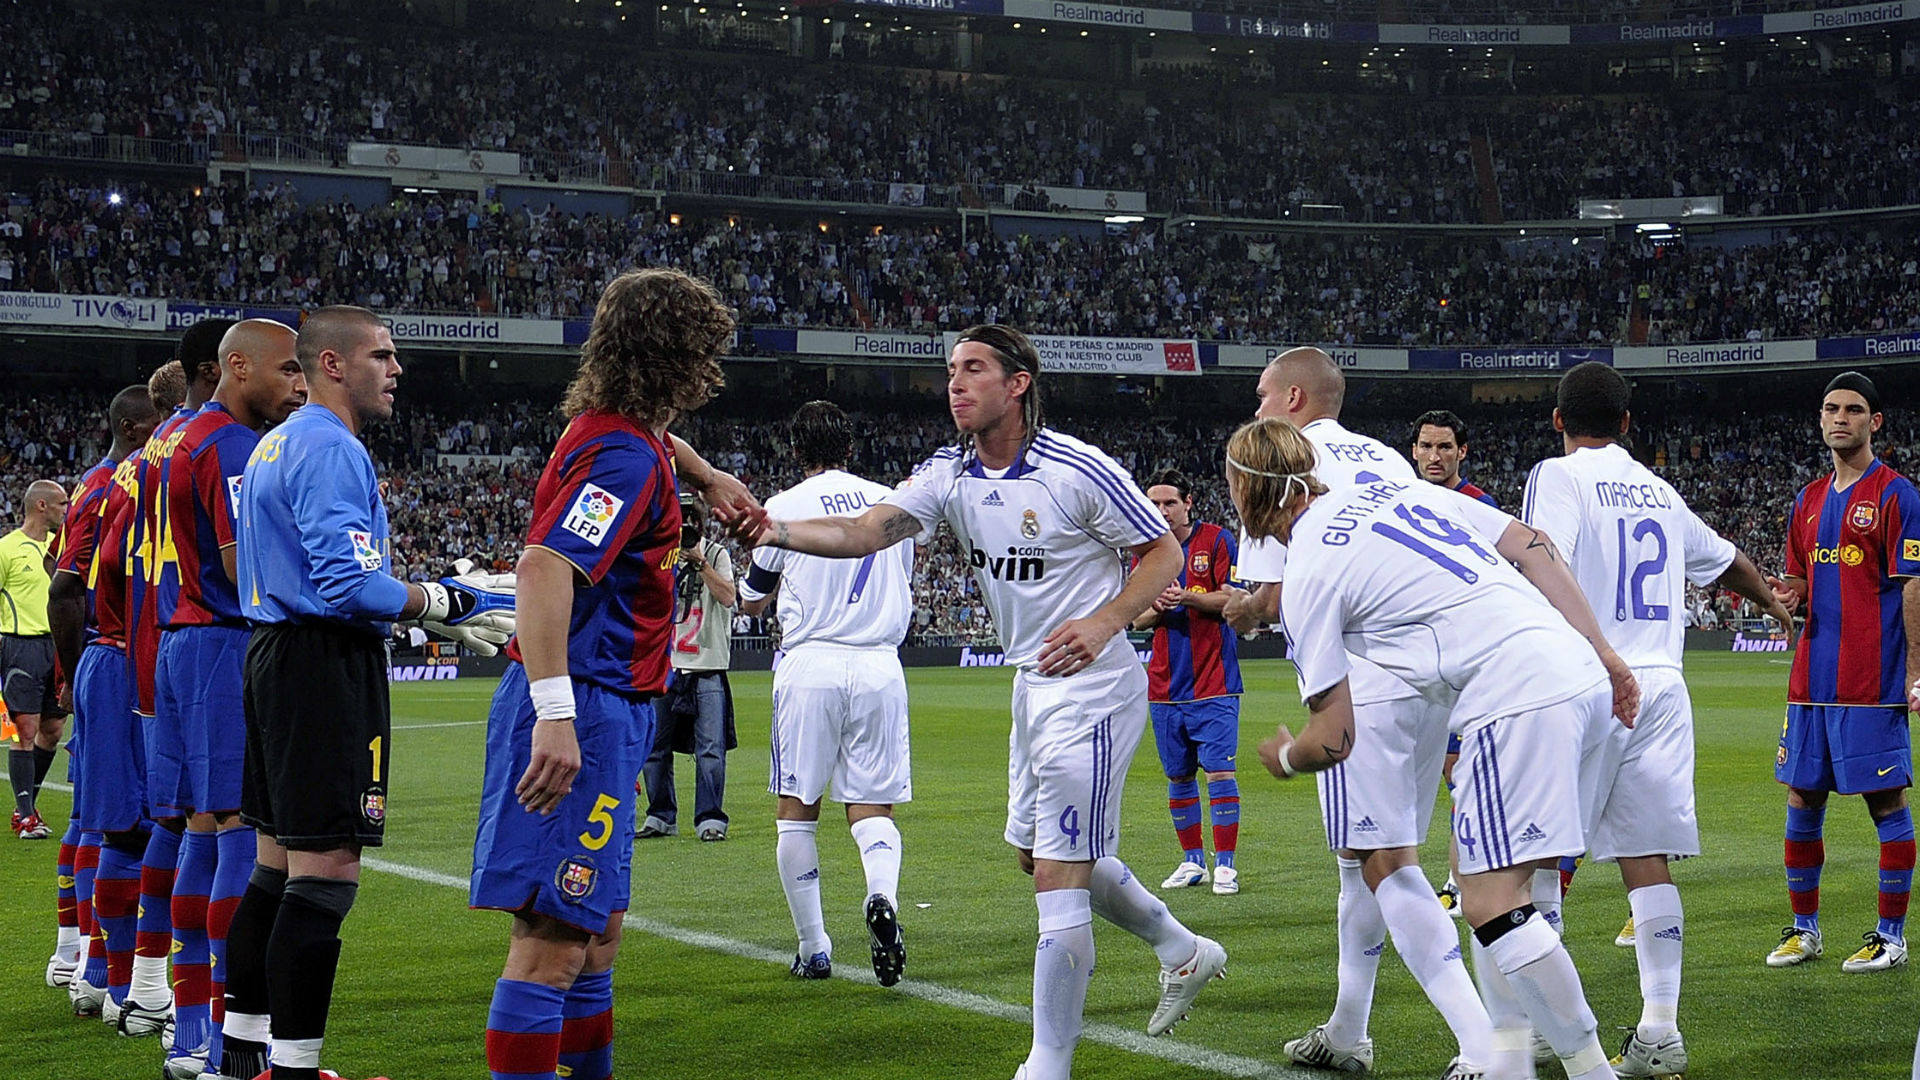 Barcelona Real Madrid pasillo 2008